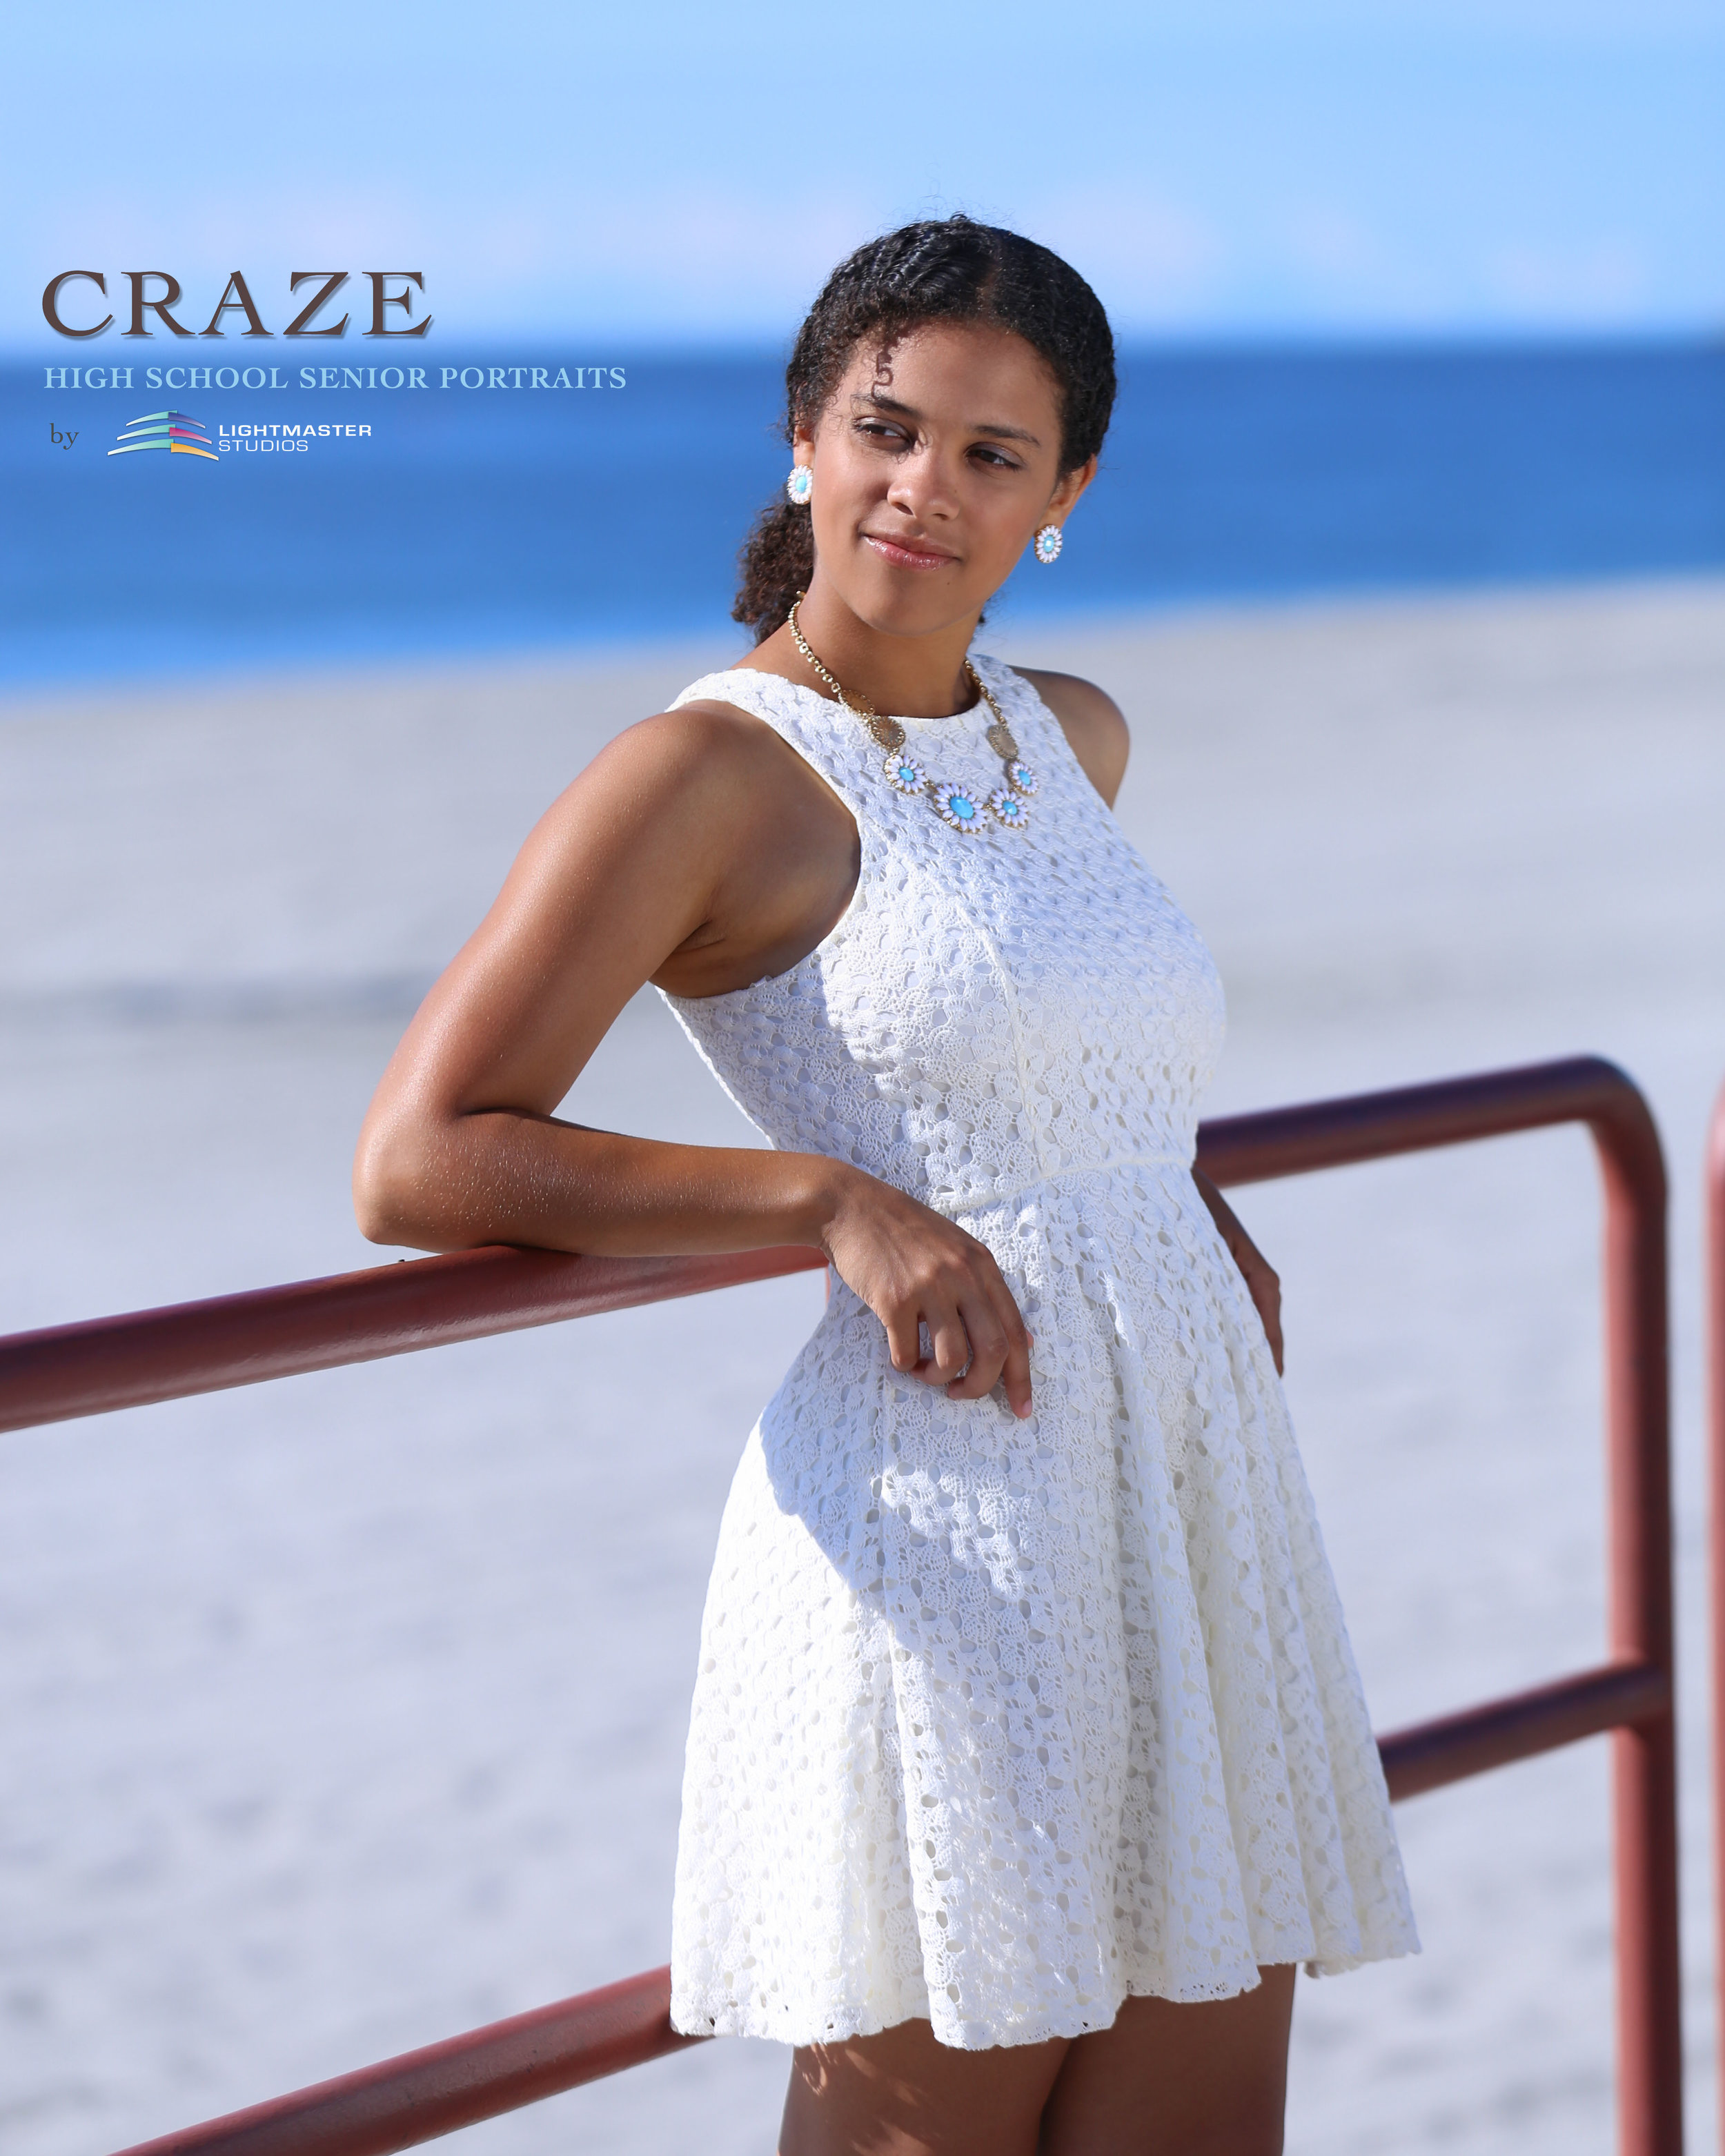 CRAZE Senior Portrait - We see your beauty, and we show it to the world!